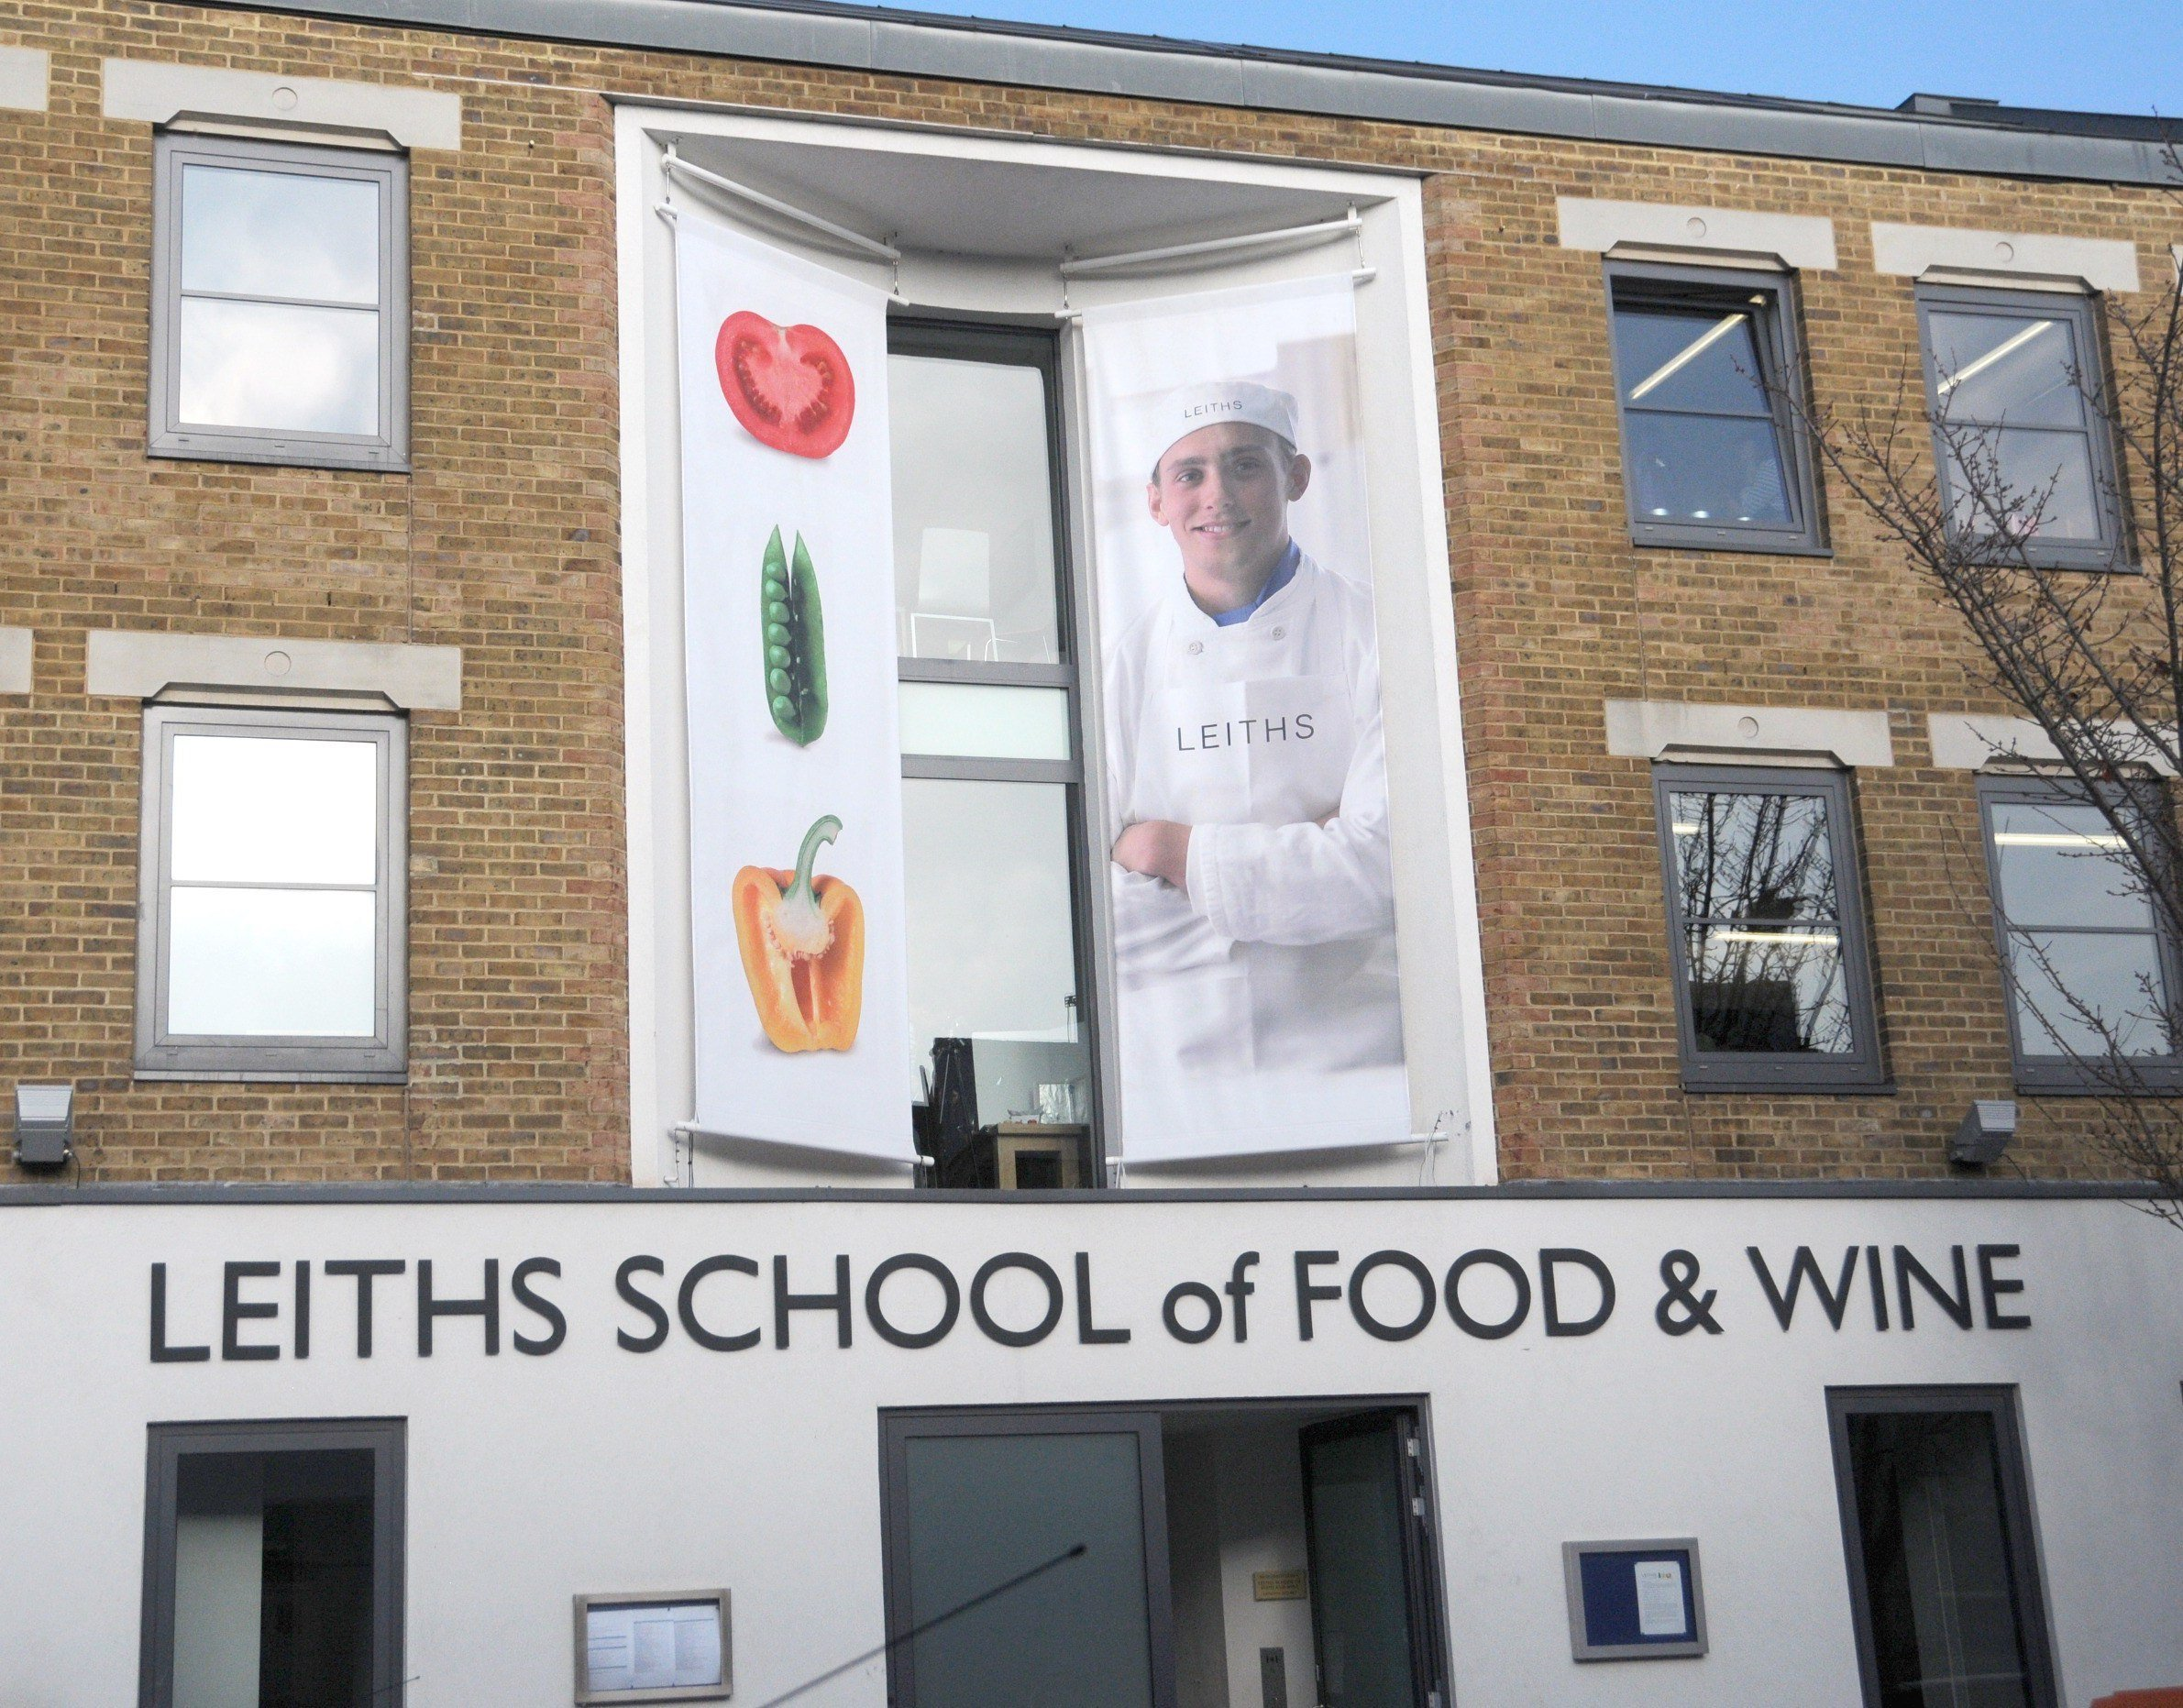 Leiths1A 26 Things You Didn't Know About Bake Off's Prue Leith